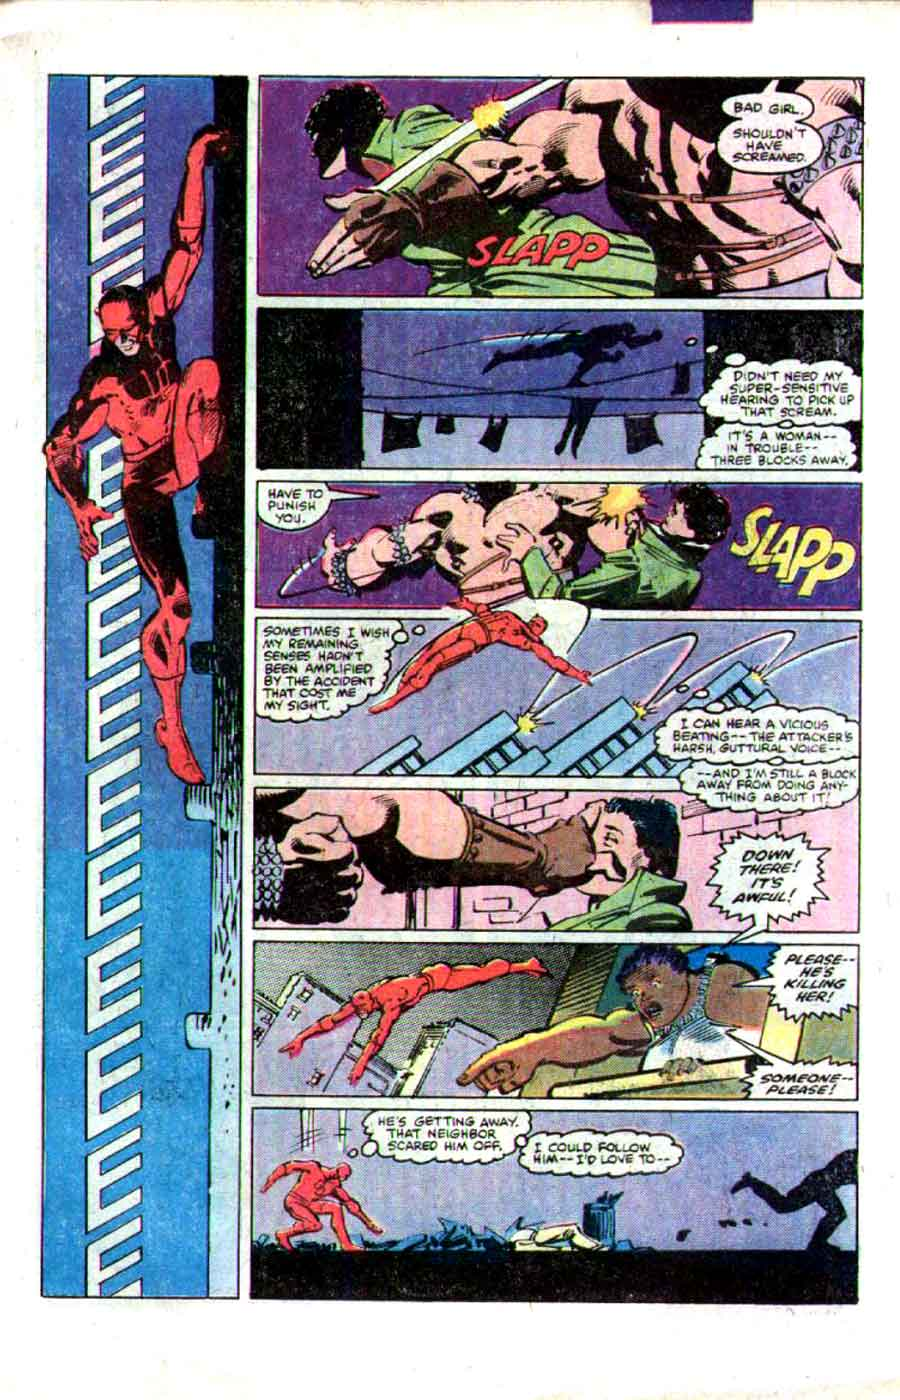 Daredevil v1 #173 marvel comic book page art by Frank Miller